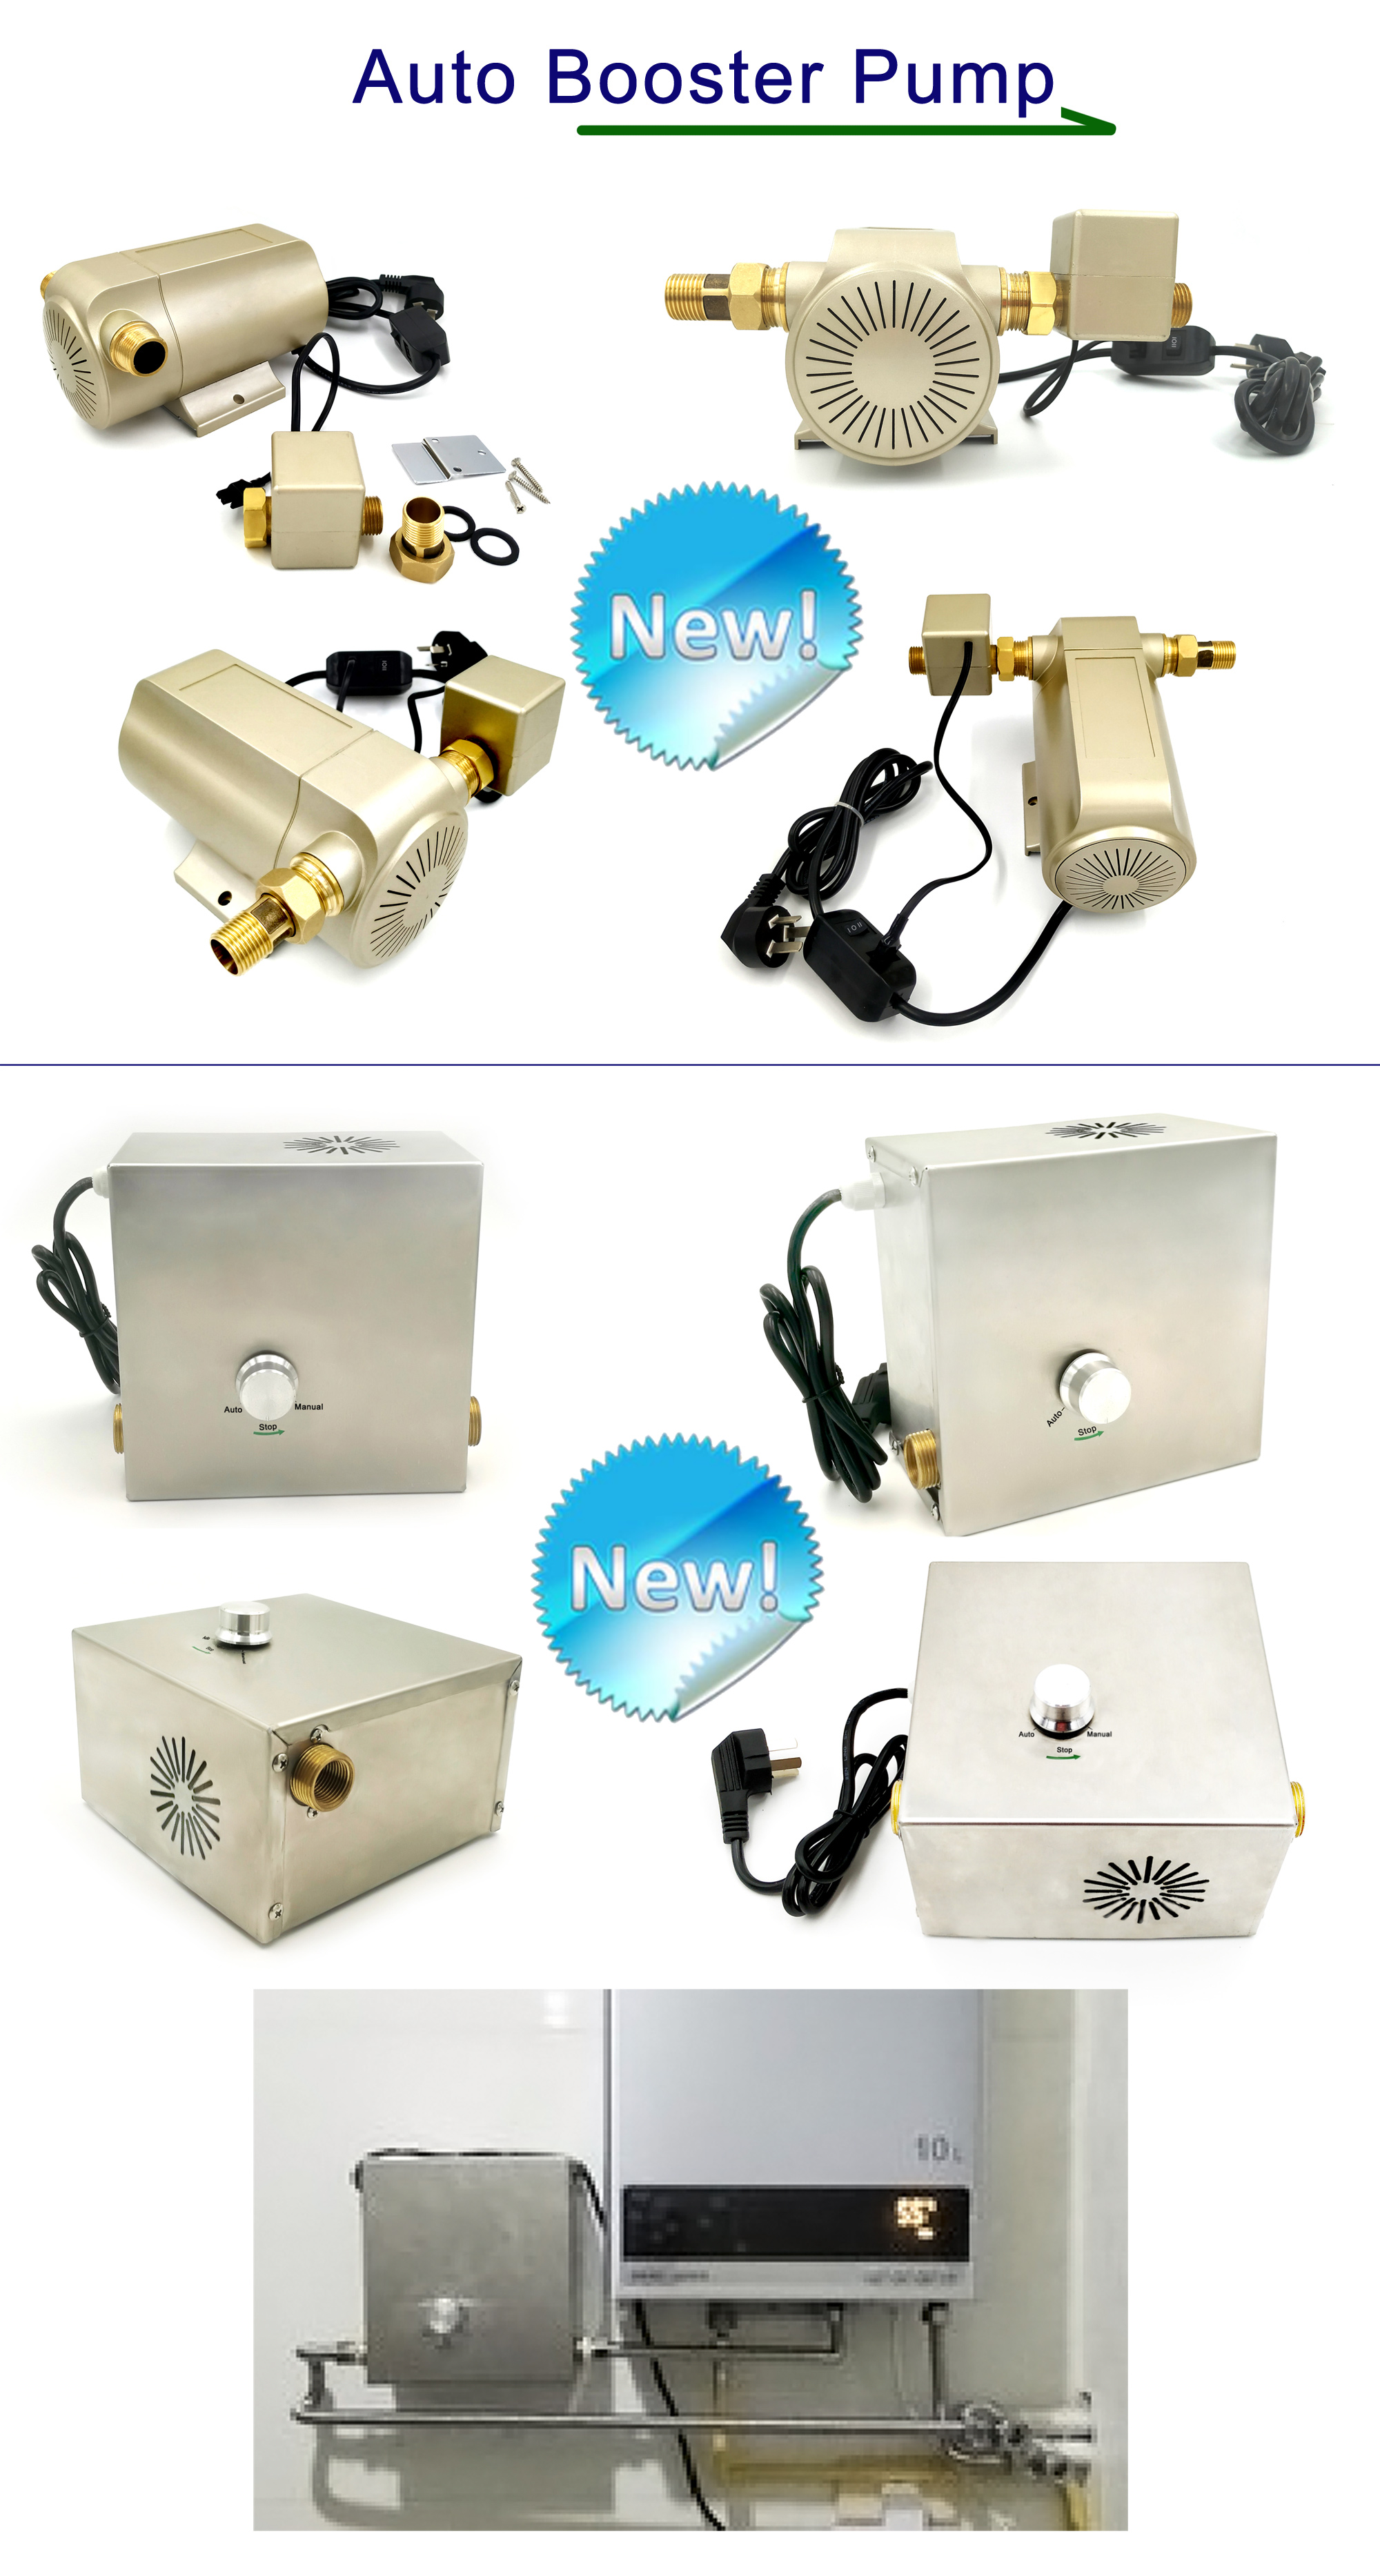 New products-Automatic Boosting Pump WG series